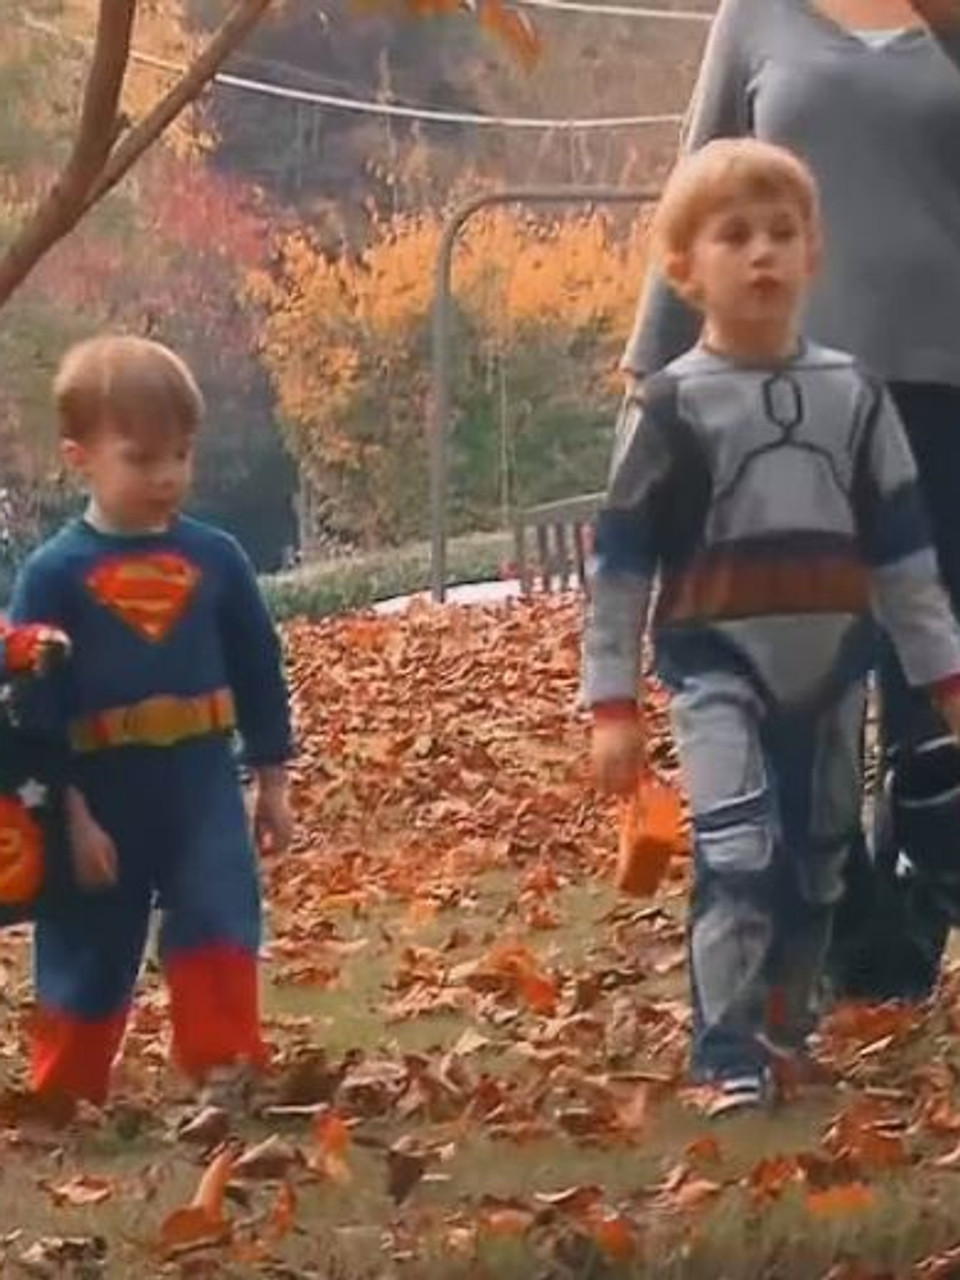 Boone County Schedule 2020 Halloween Boone County releases health guidelines for Halloween | KRCG